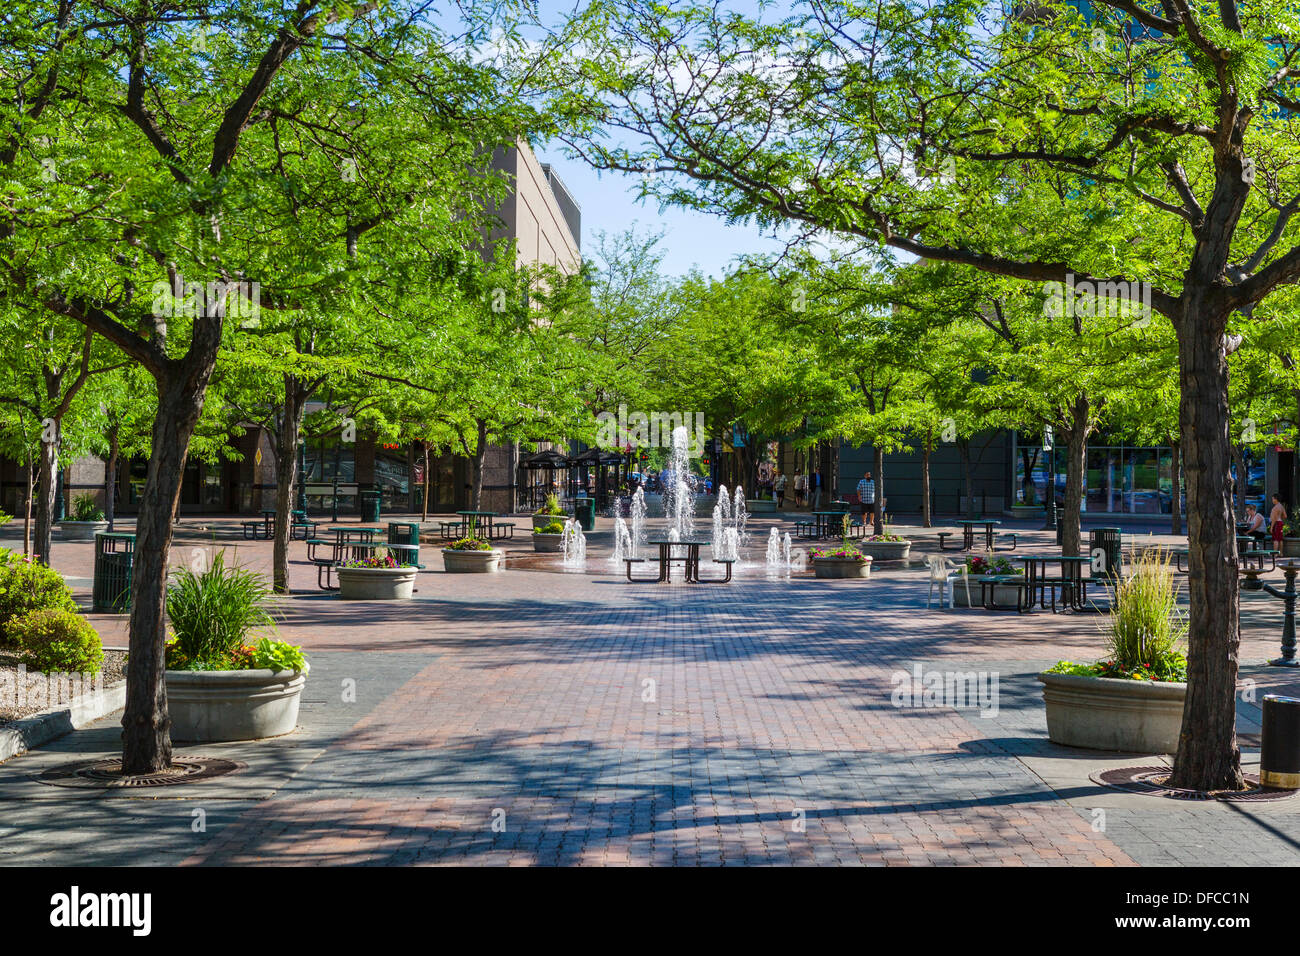 Pedestrian area of N 8th Street in historic downtown Boise, Idaho, USA - Stock Image